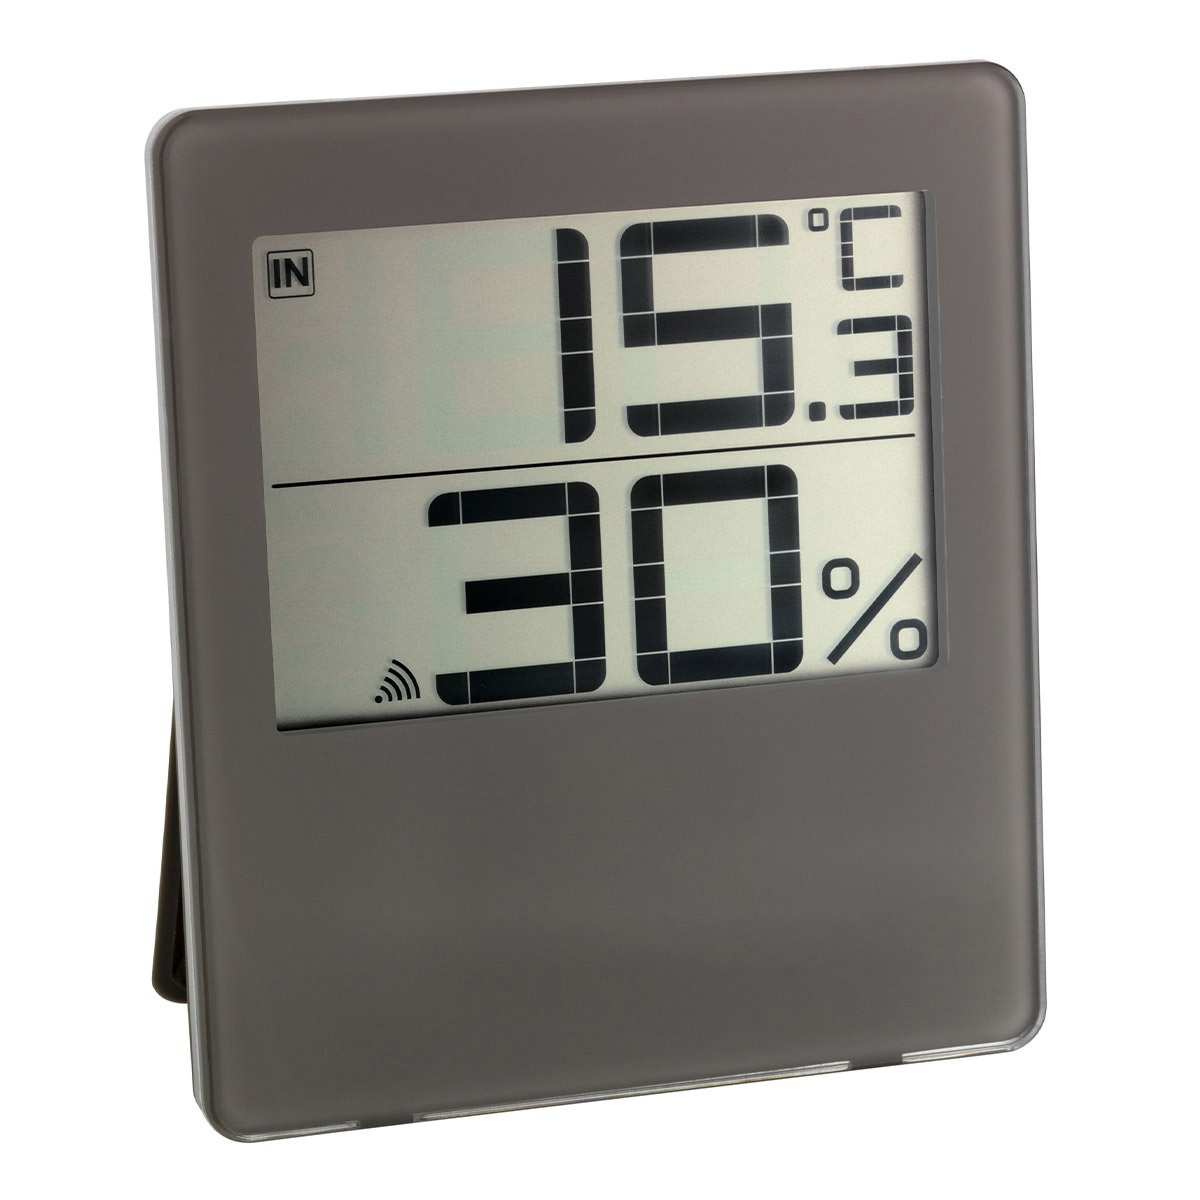 30-3052-08-funk-thermo-hygrometer-chilly-1200x1200px.jpg